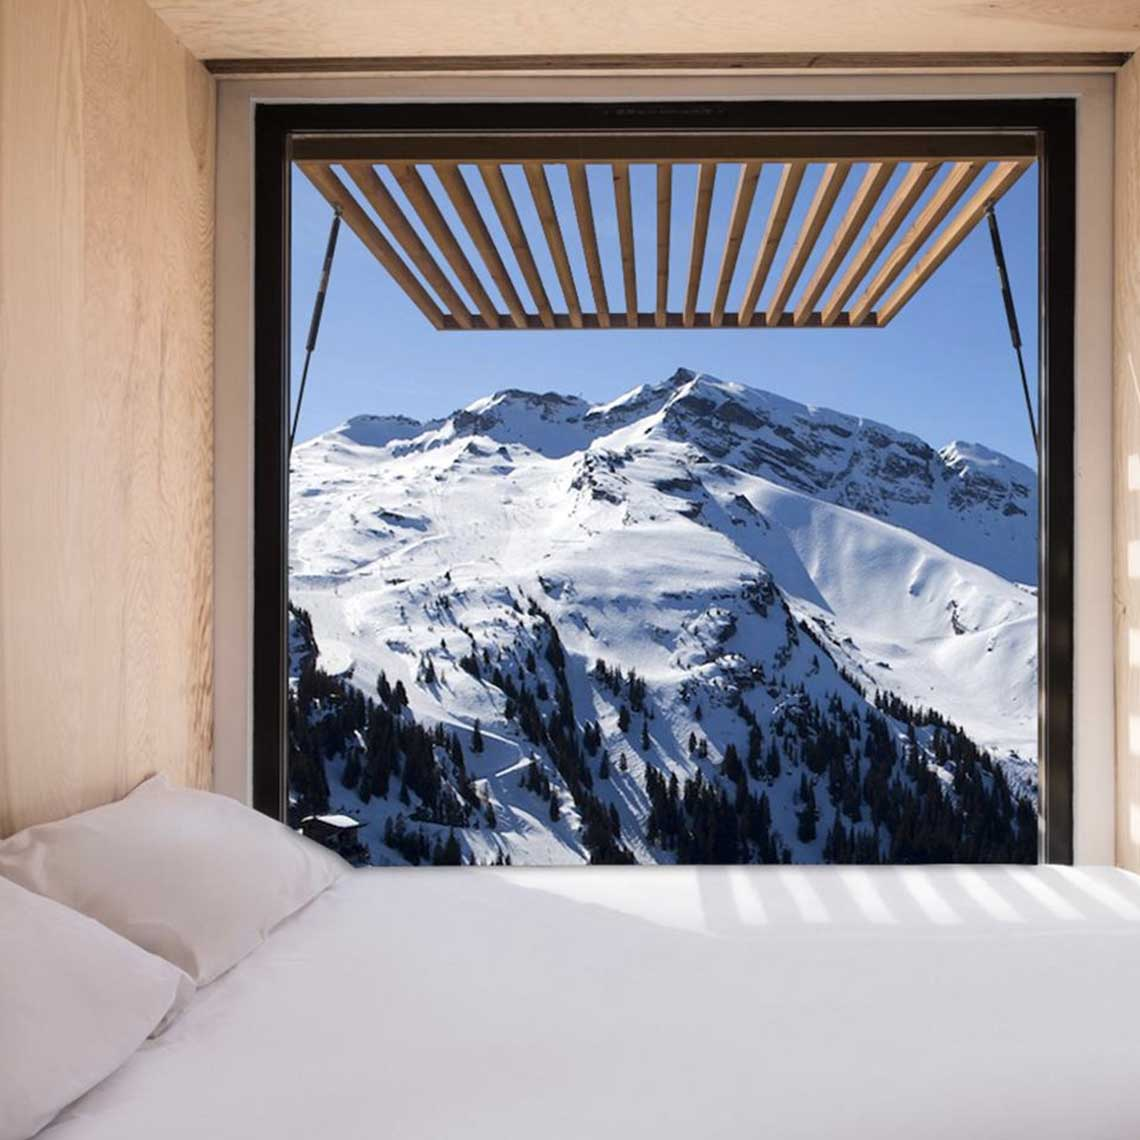 Flying nest containerhotel Avoriaz - Travelvibe